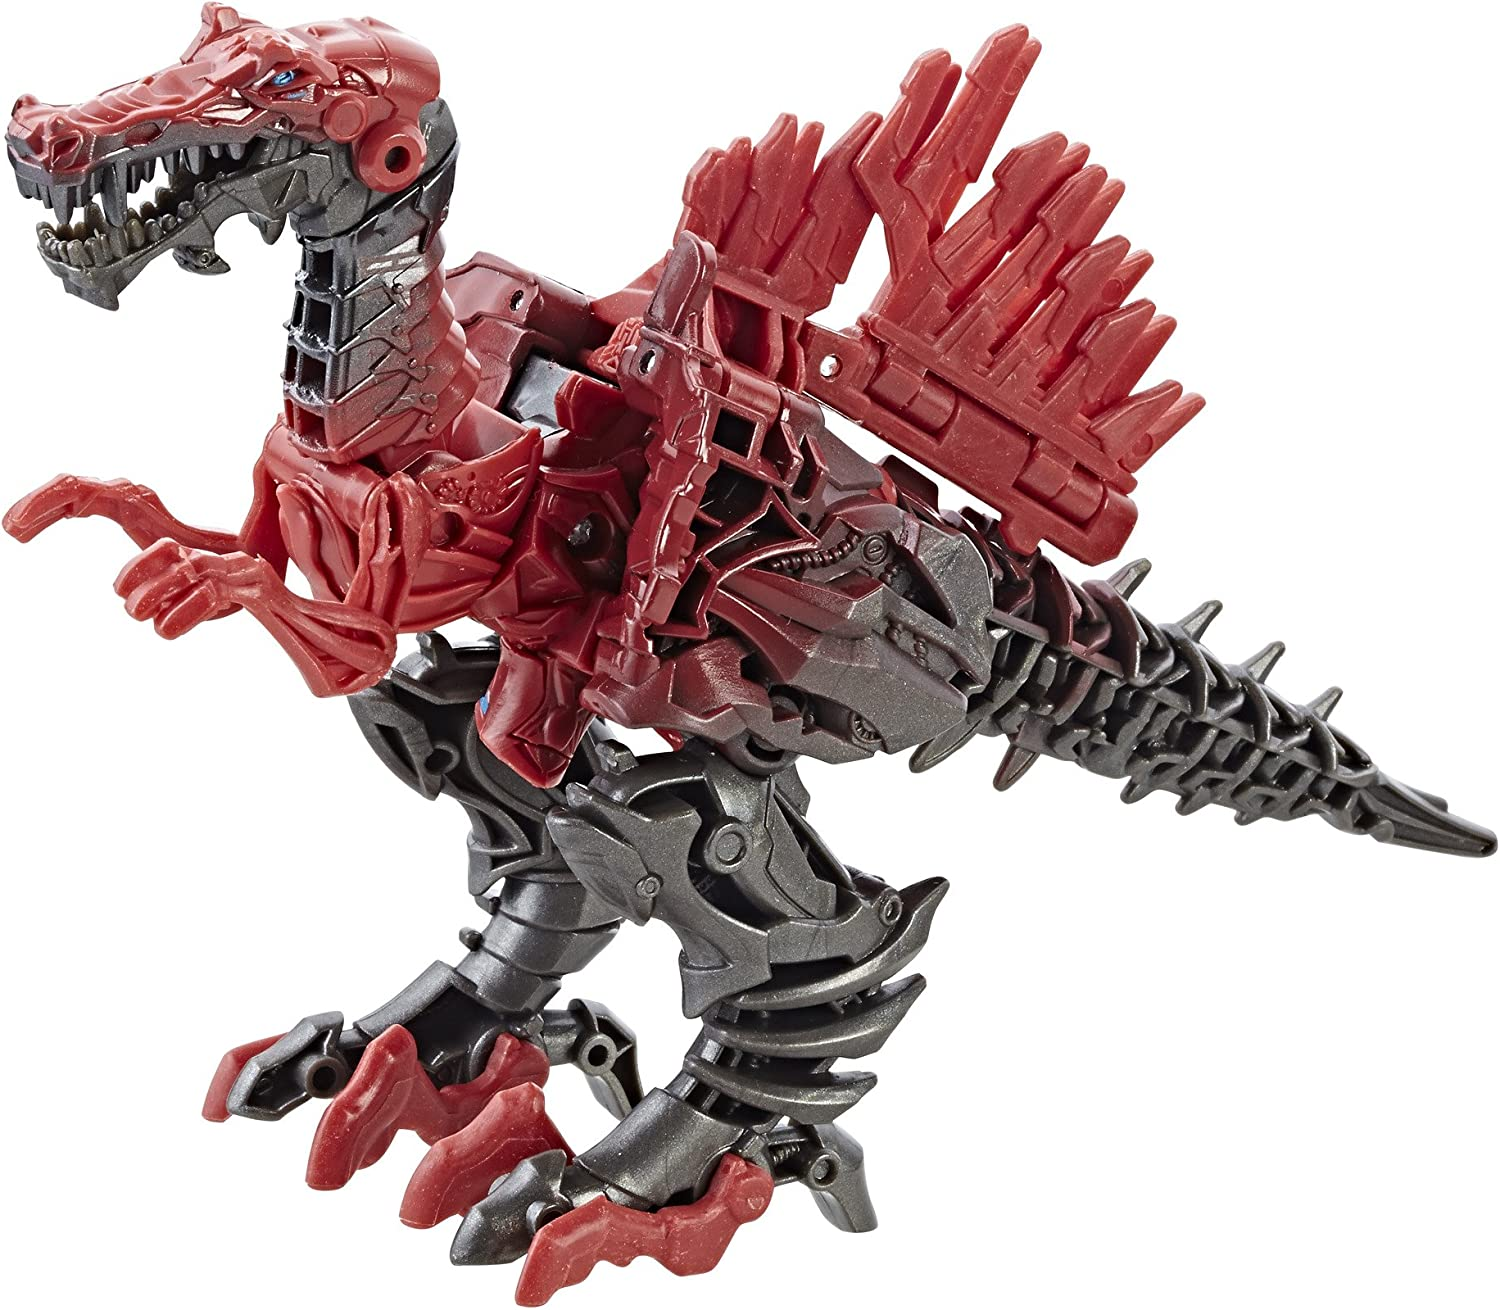 Transformers The Last Knight 1-Step Turbo Changer Scorn